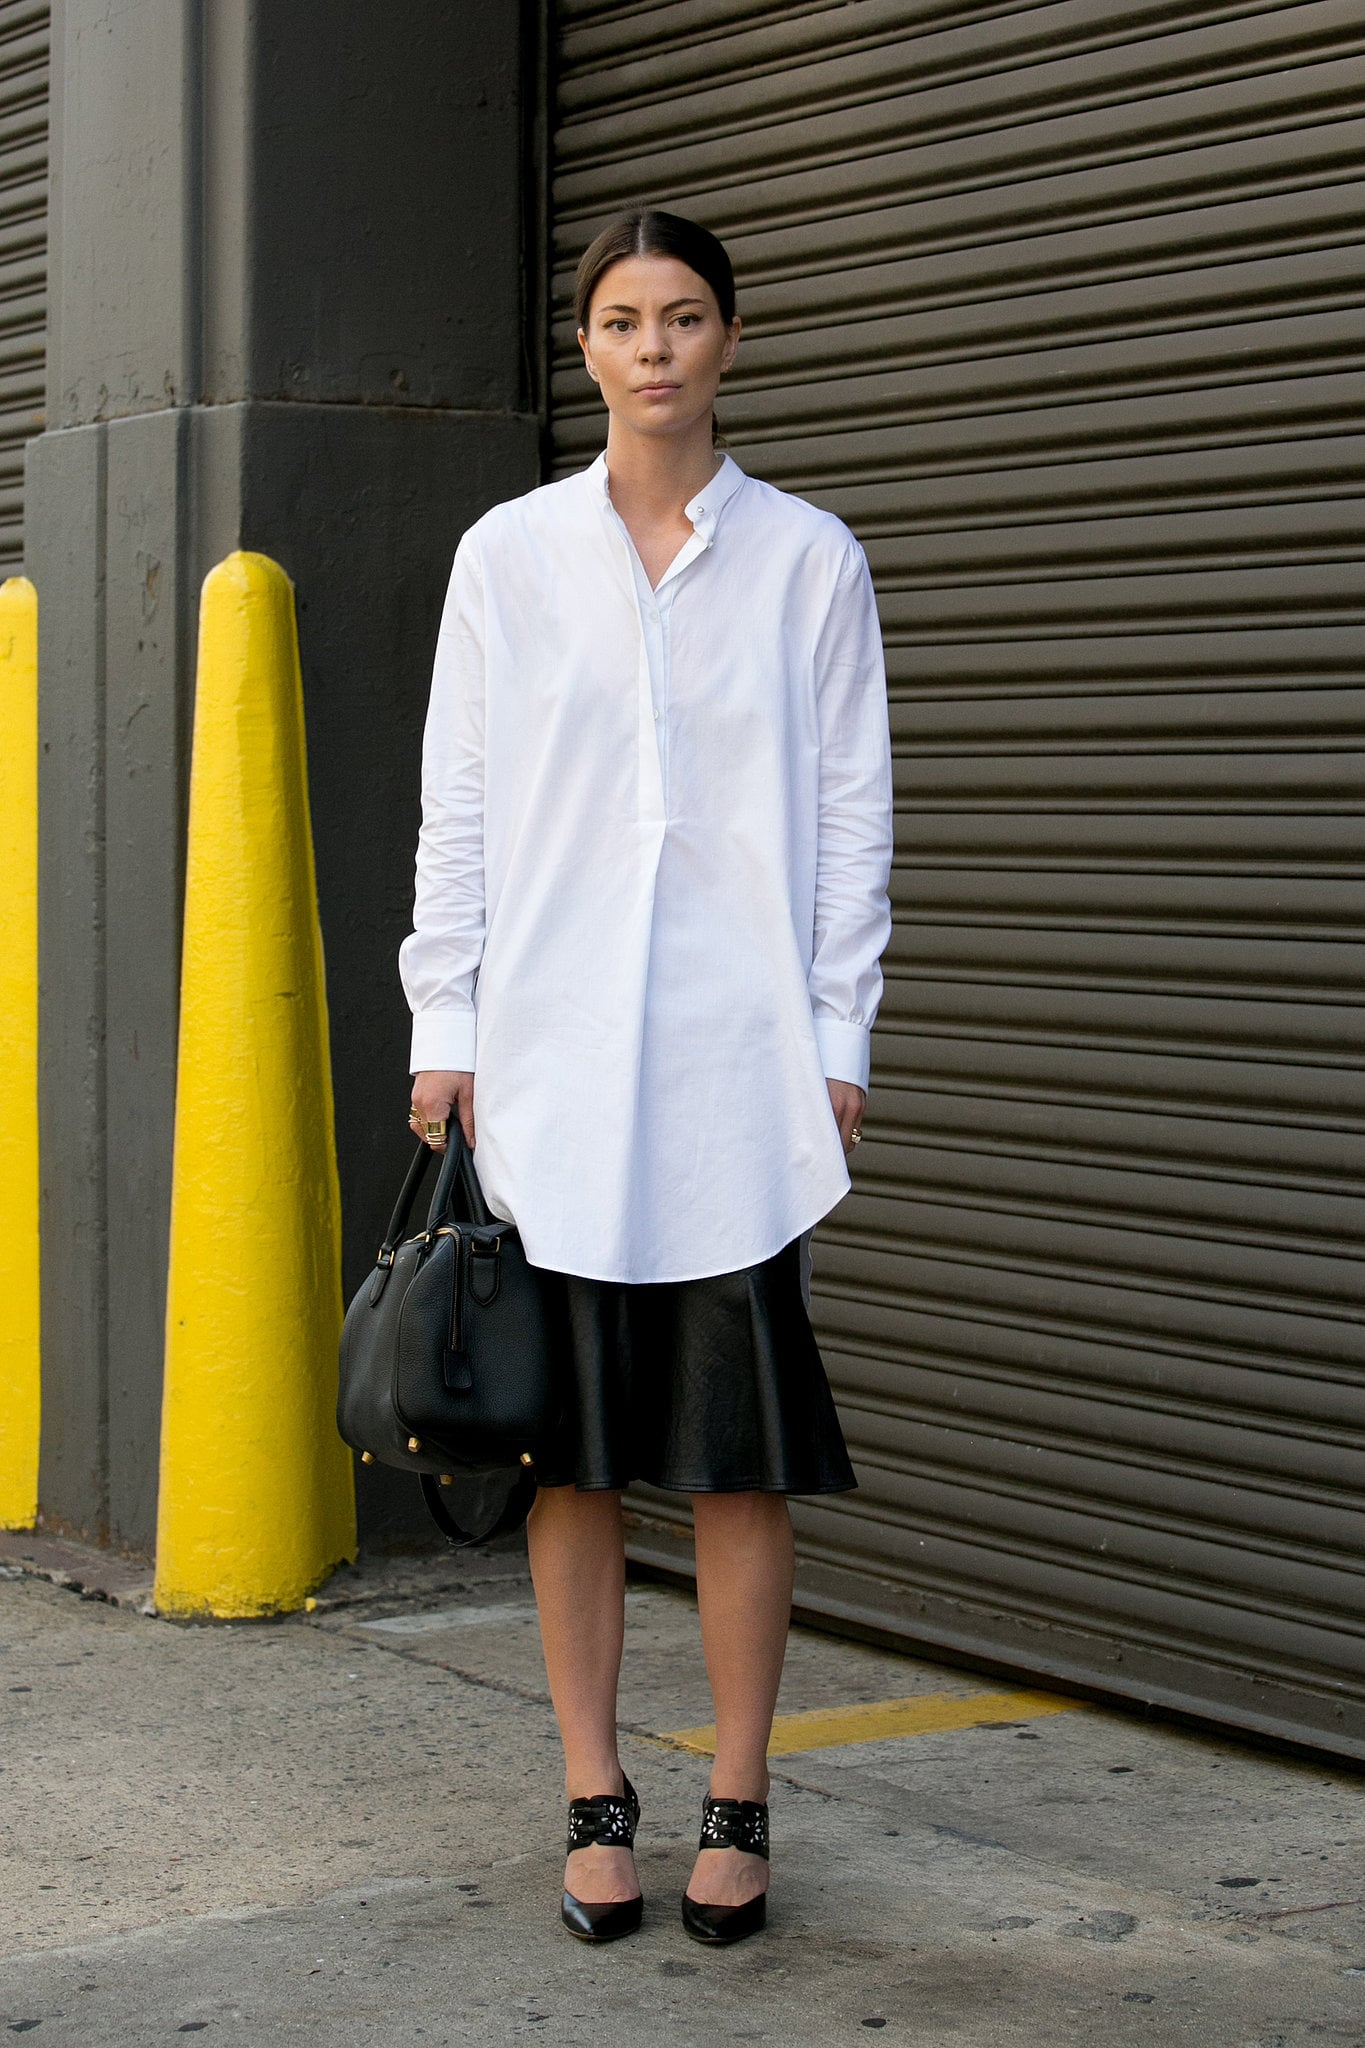 A basic white button-down is our go-to year-round; just make it feel easy with a midiskirt and heels for an effortless office ensemble.